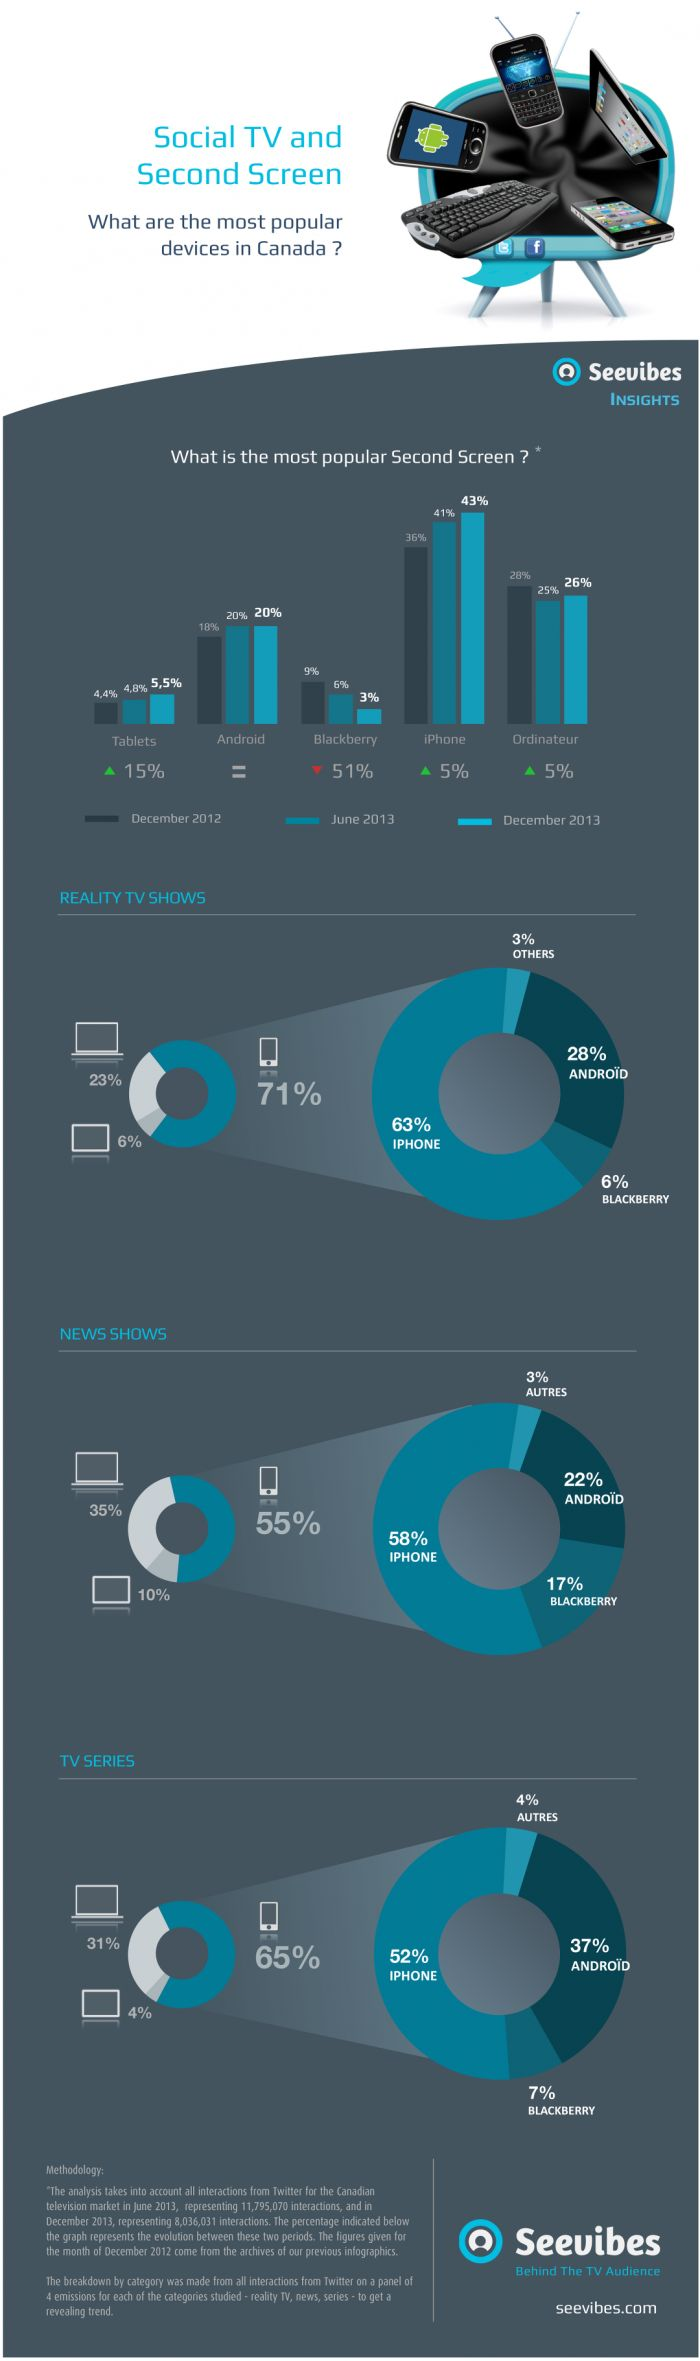 Social TV and Second Screen: What are the most popular devices in Canada? [INFOGRAPHIC] via @Seevibes